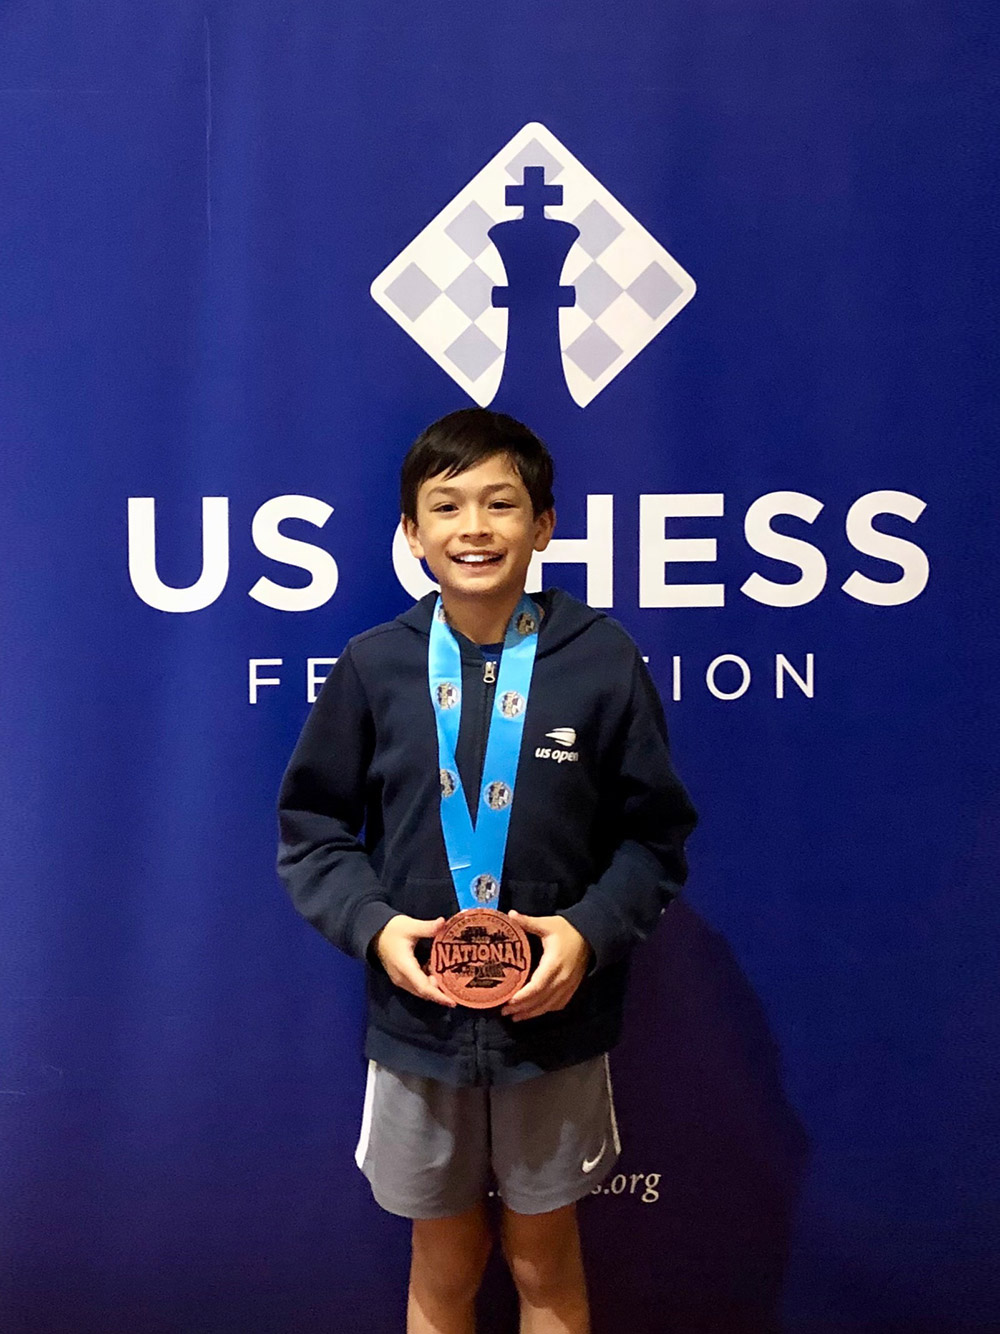 Oliver receives a medal at the 2019 National K-12 Grade Championships in Orlando. December, 2019